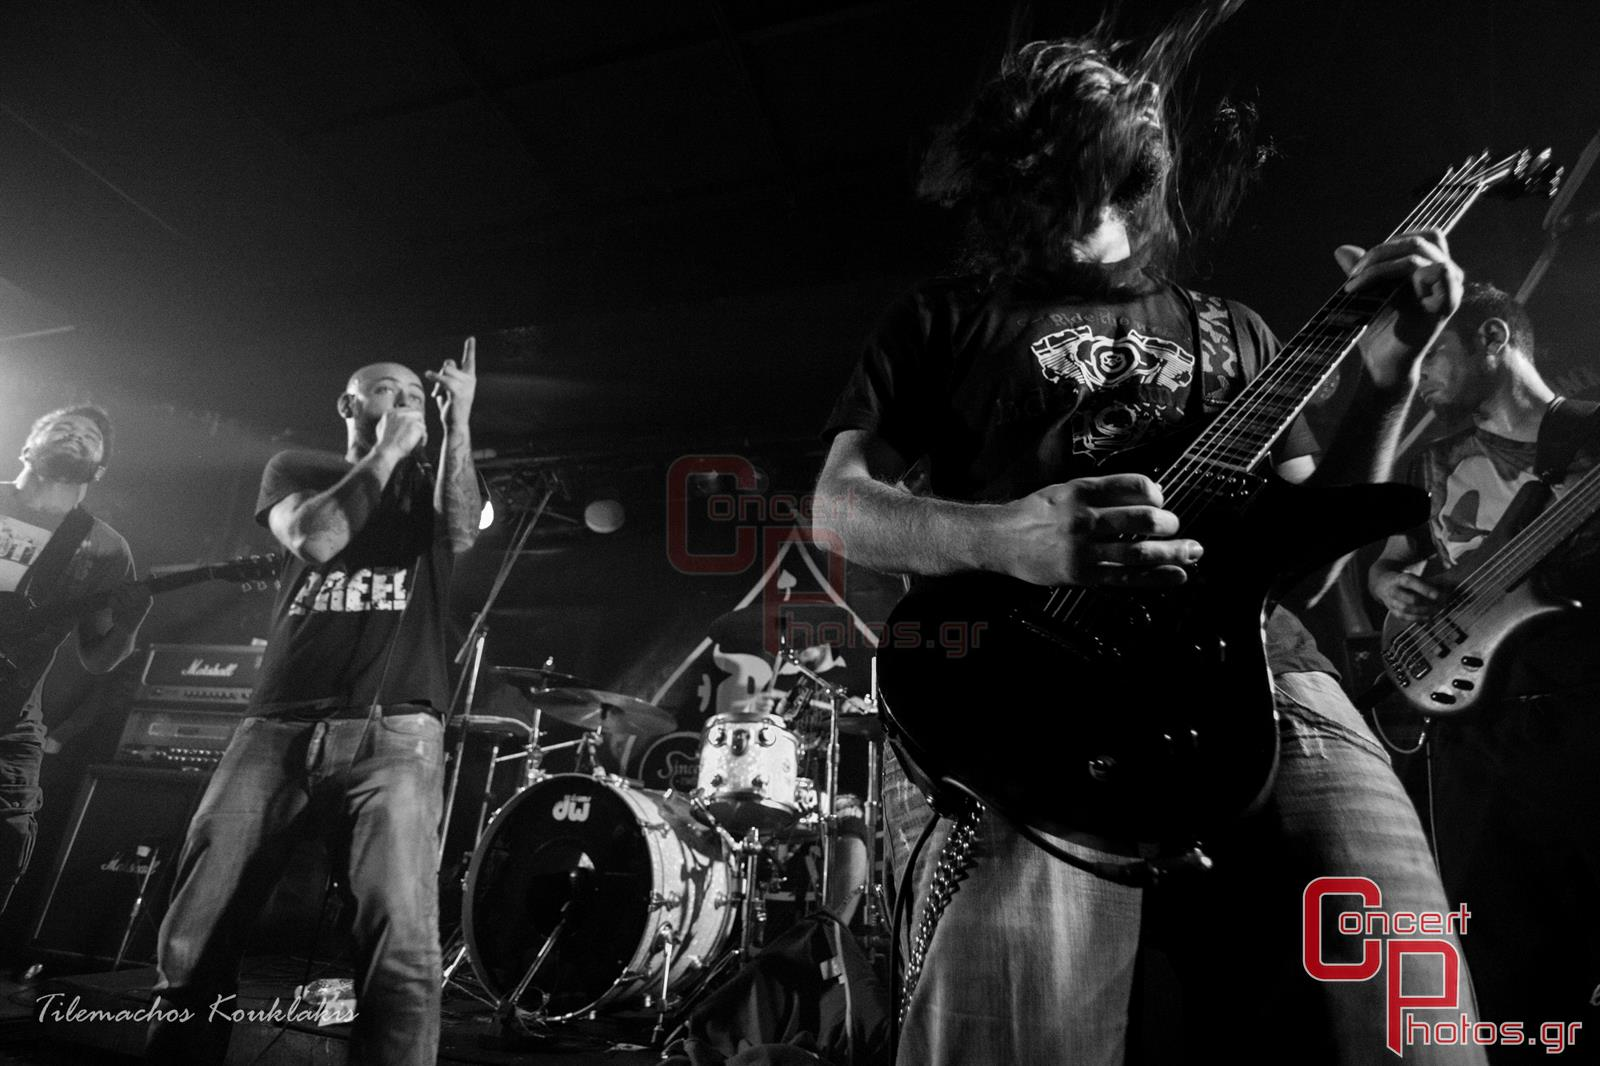 Nightstalker-Nightstalker AN Club photographer:  - concertphotos_-15